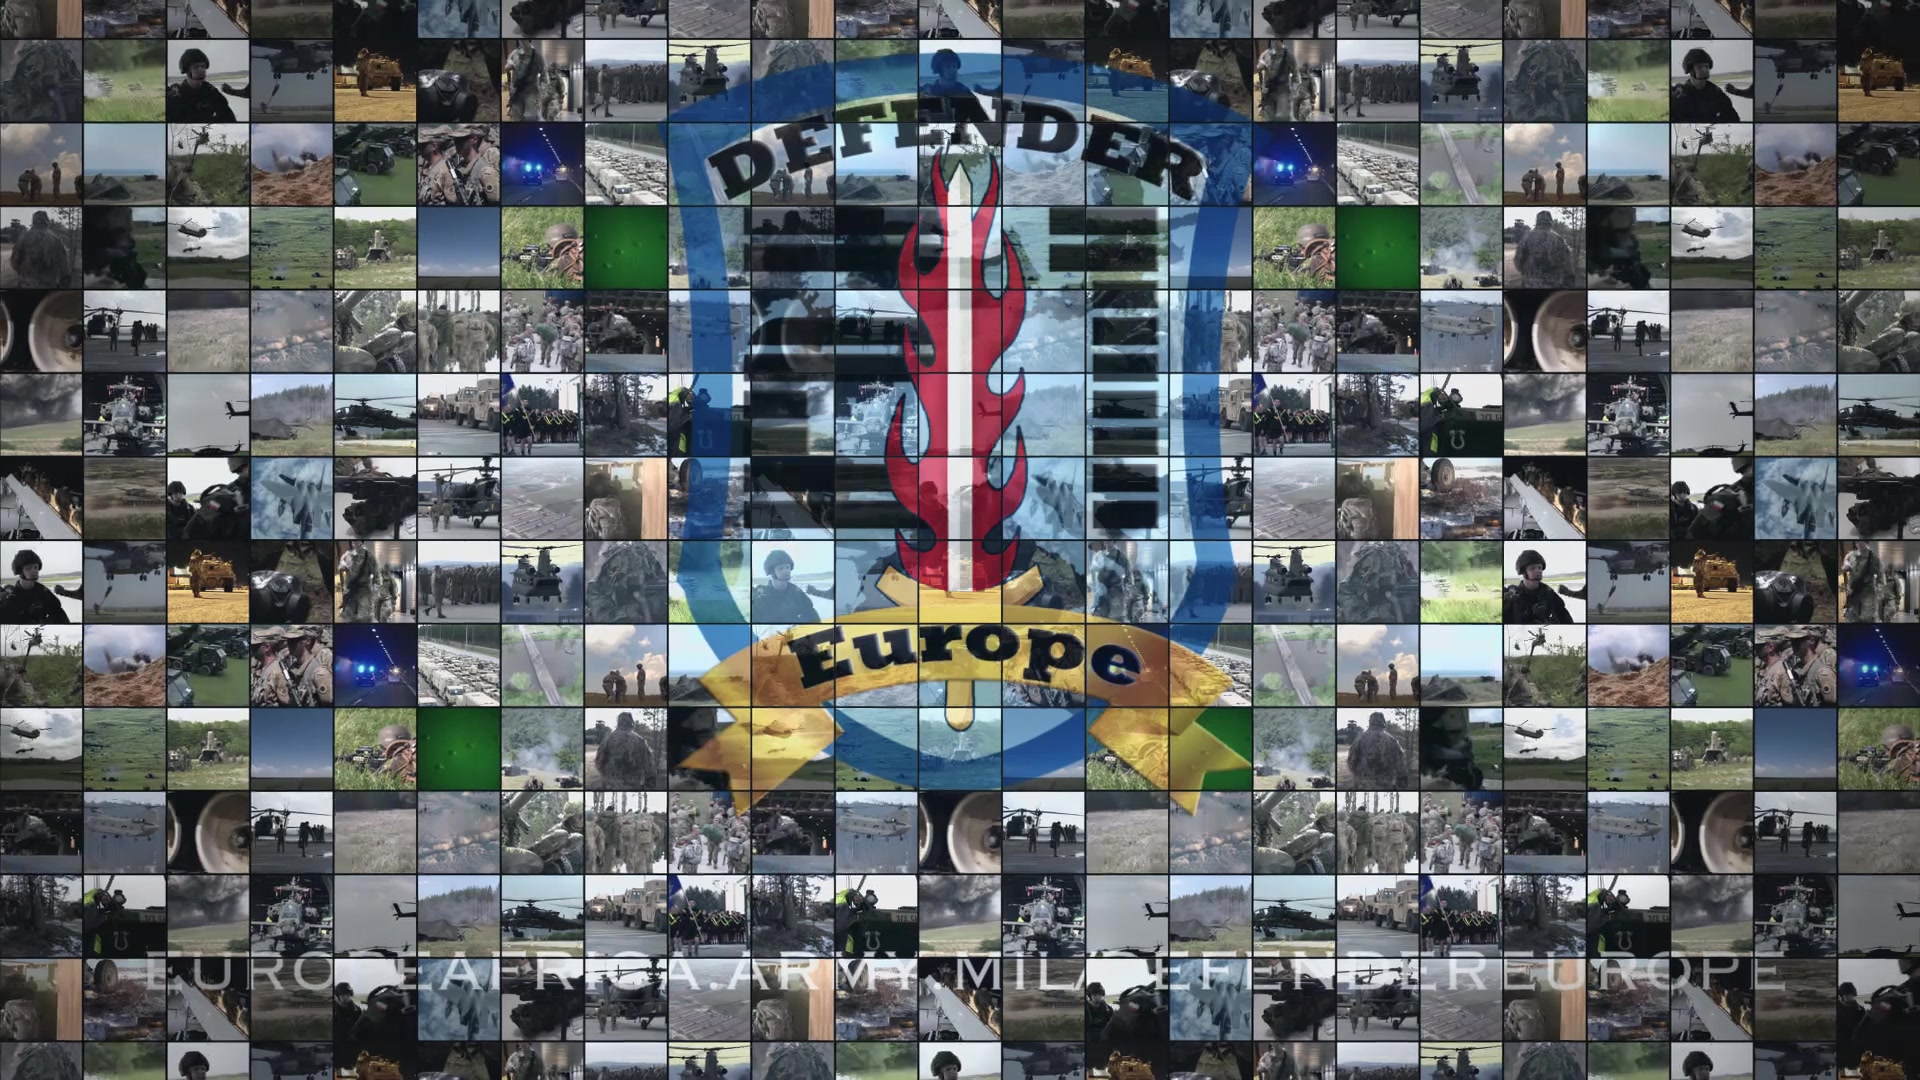 Defender-Europe Begins In Estonia, NATO Surprised Russia Has Forces Along Its Own Border